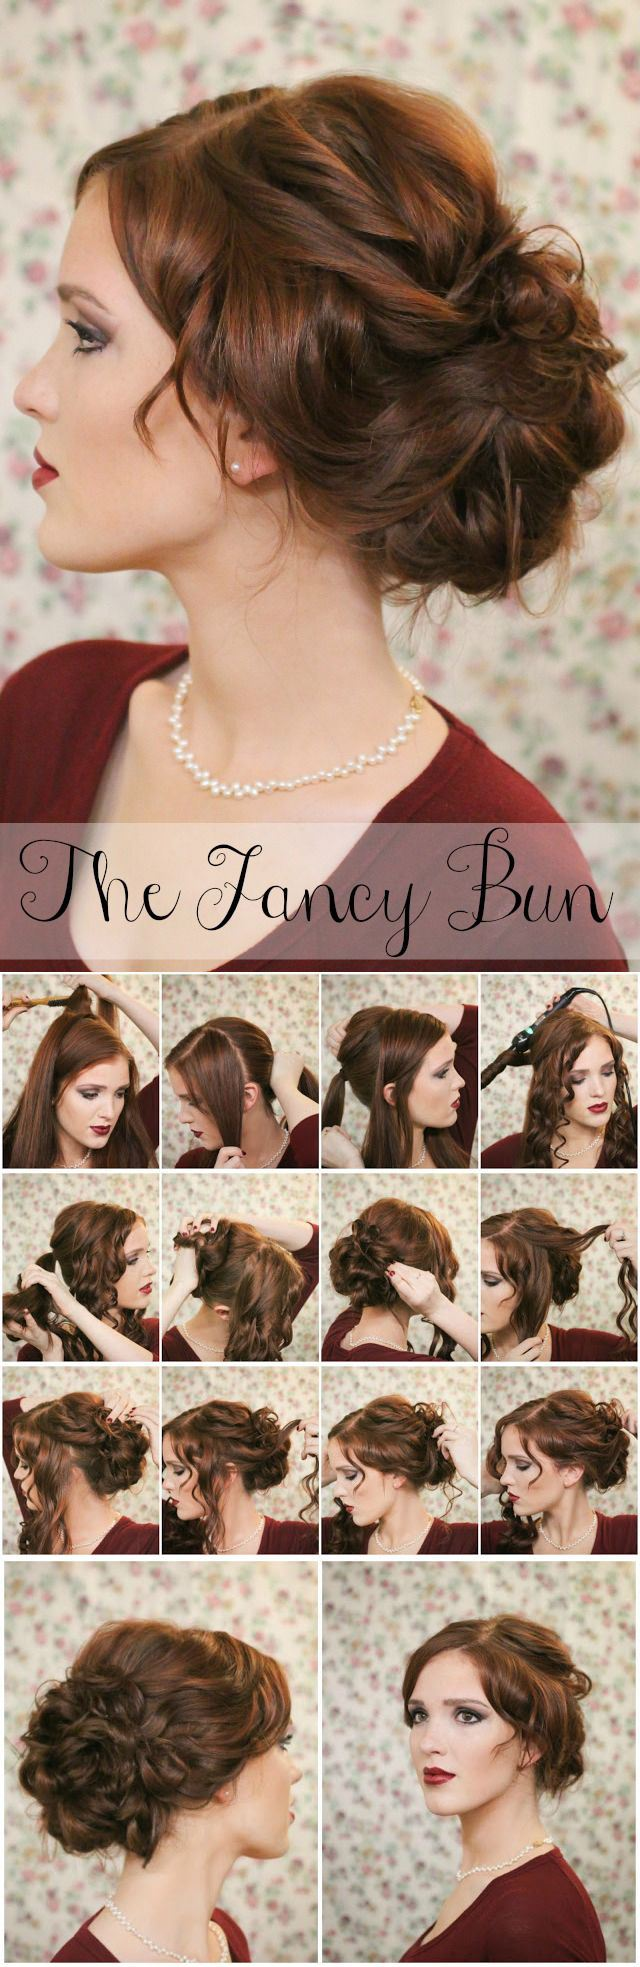 Prime Top 25 Messy Hair Bun Tutorials Perfect For Those Lazy Mornings Hairstyle Inspiration Daily Dogsangcom